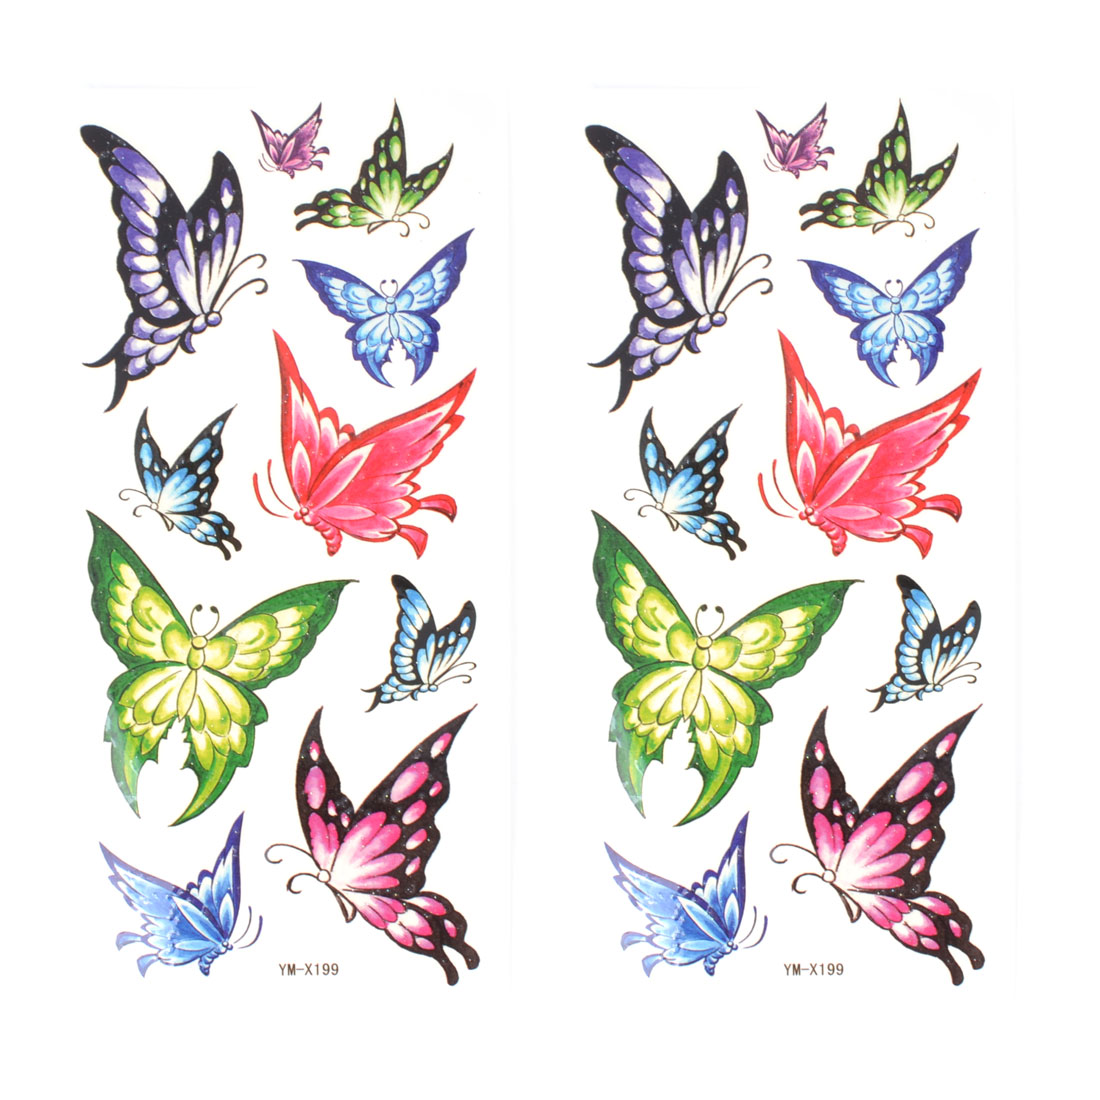 Unique BargainsMulticolor Butterfly Pattern Waterproof Temporary Tattoo Transfer Sticker 2 Pcs - image 1 de 1